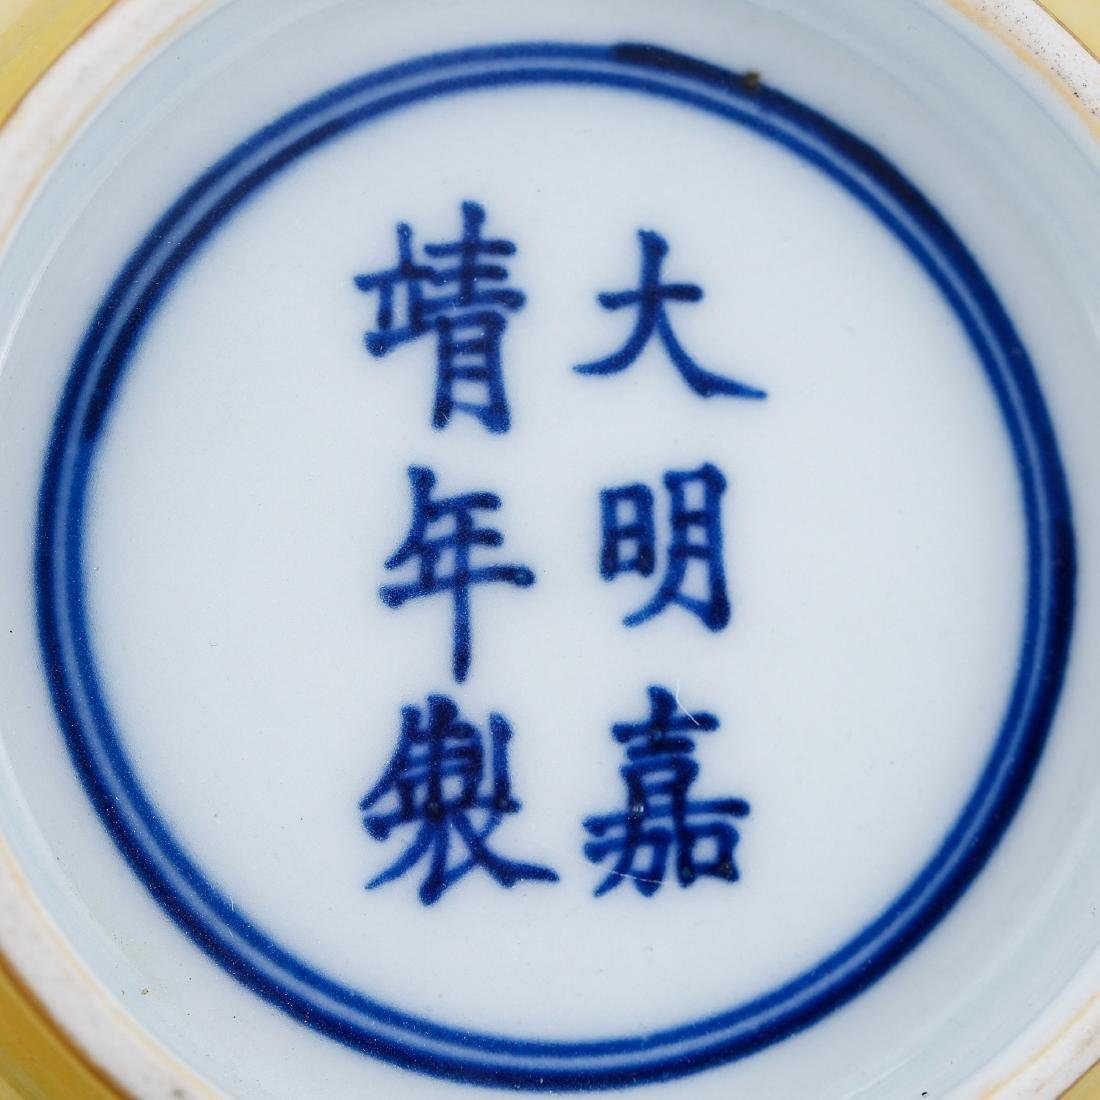 CHINESE YELLOW GLAZED BOWL, MING DYNASTY - 5